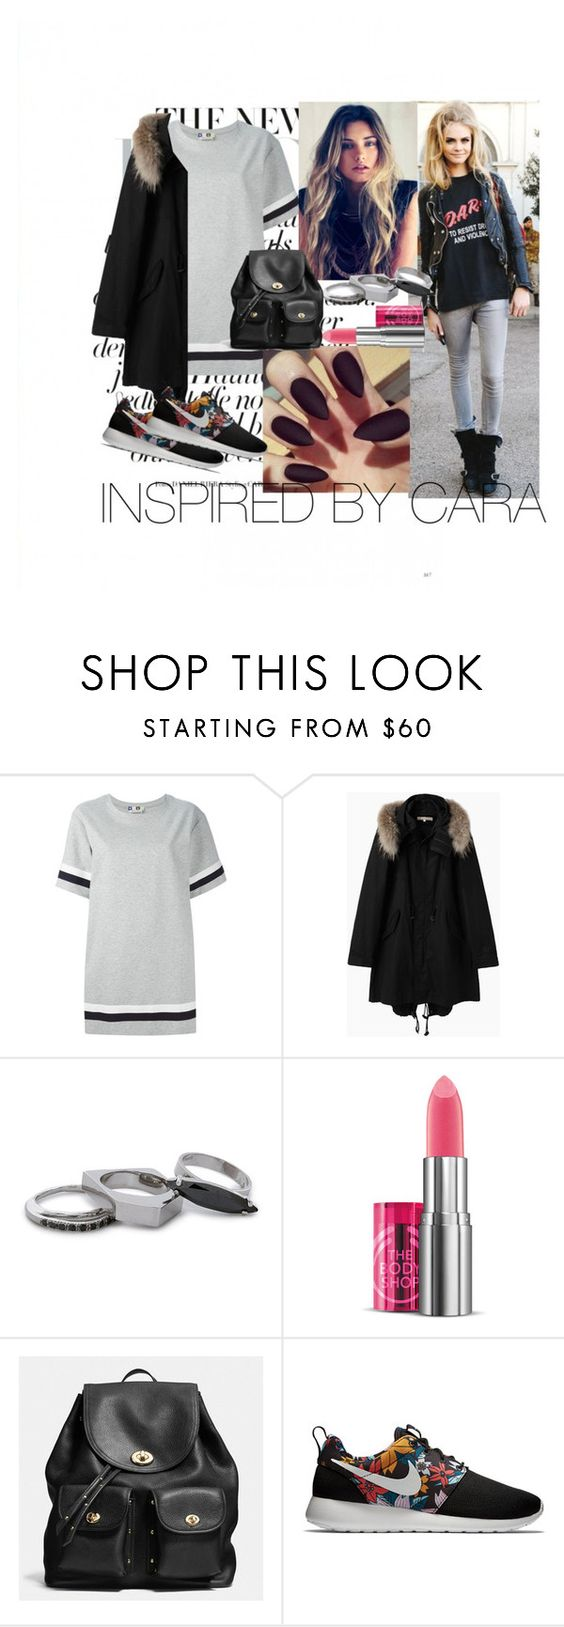 """""""Inspired by Cara Delevigne"""" by wayfaring ❤ liked on Polyvore featuring MSGM, Le Bac by united bamboo, Iosselliani, Coach and NIKE"""